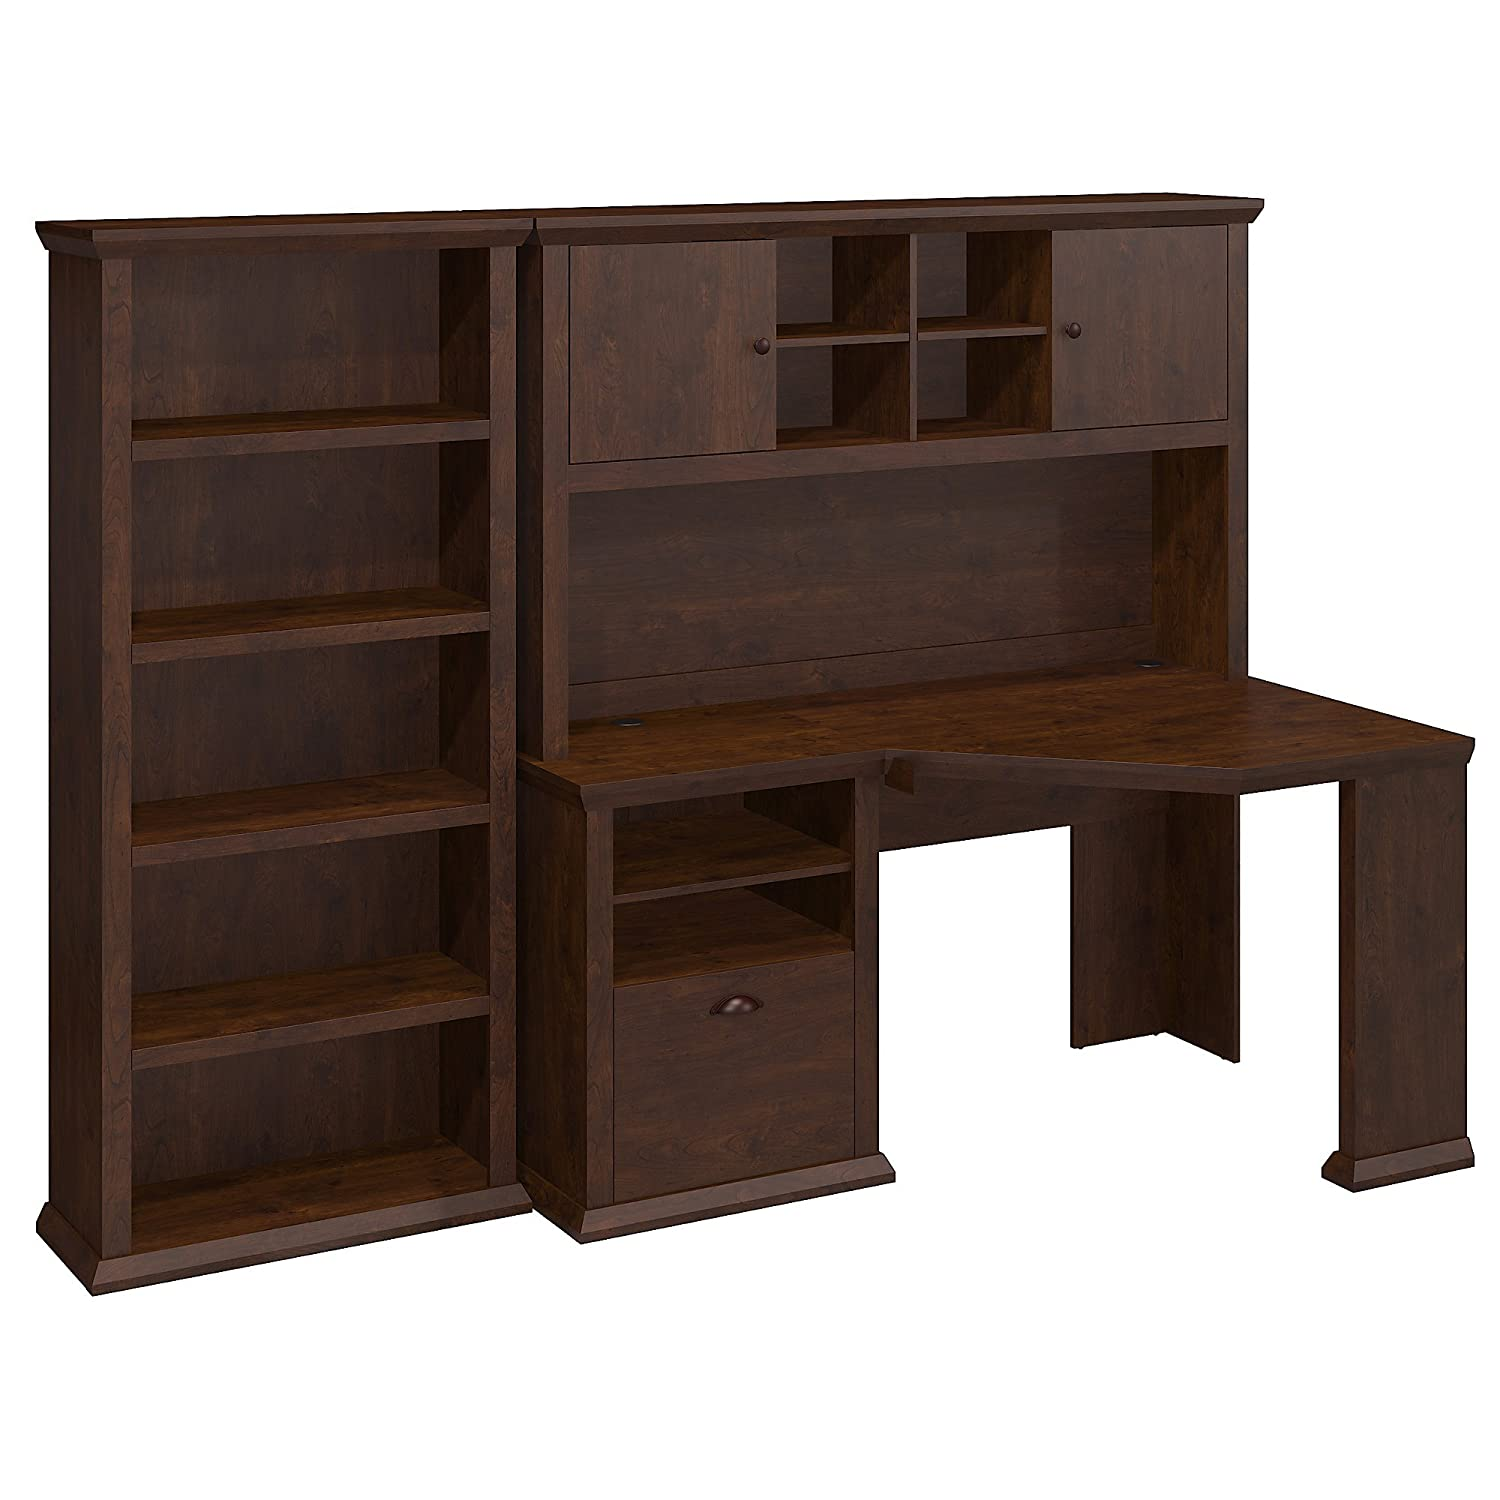 iteminformation furniture telluride hooker hutch bookcases bookcase home office